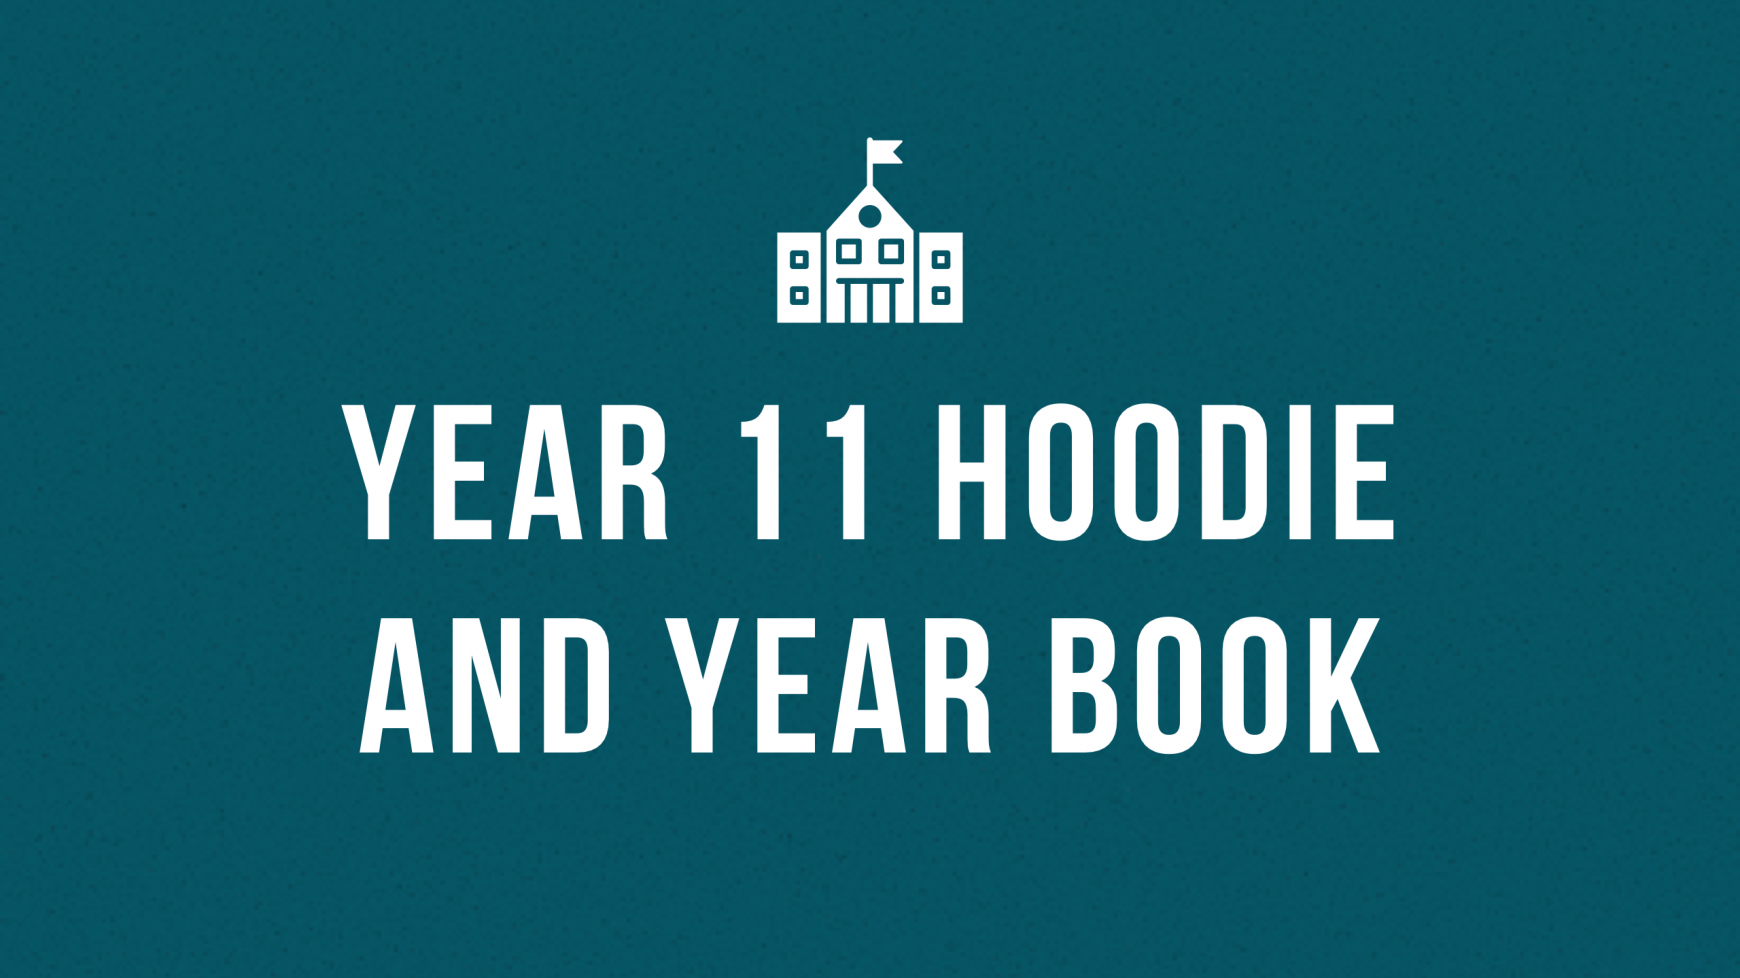 Year 11 Hoodie and Year Book